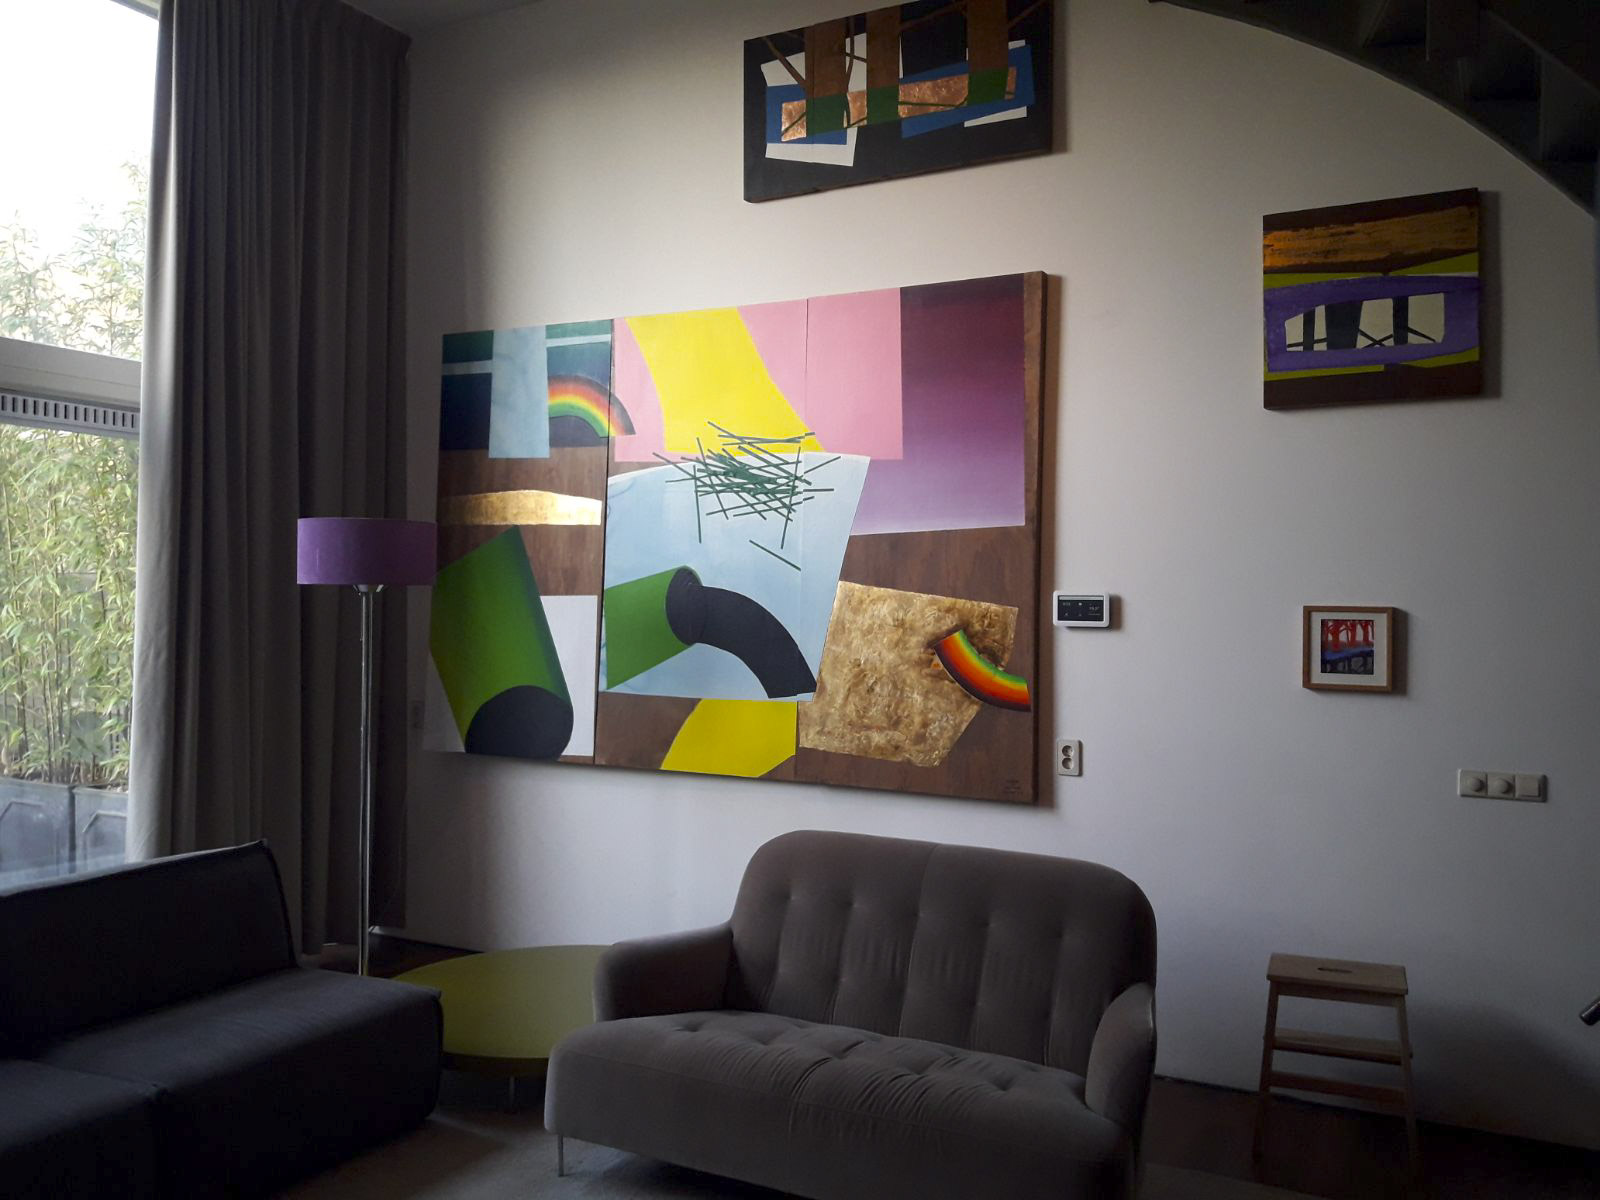 art in interior - living room 03 | sasja hagens.jpg